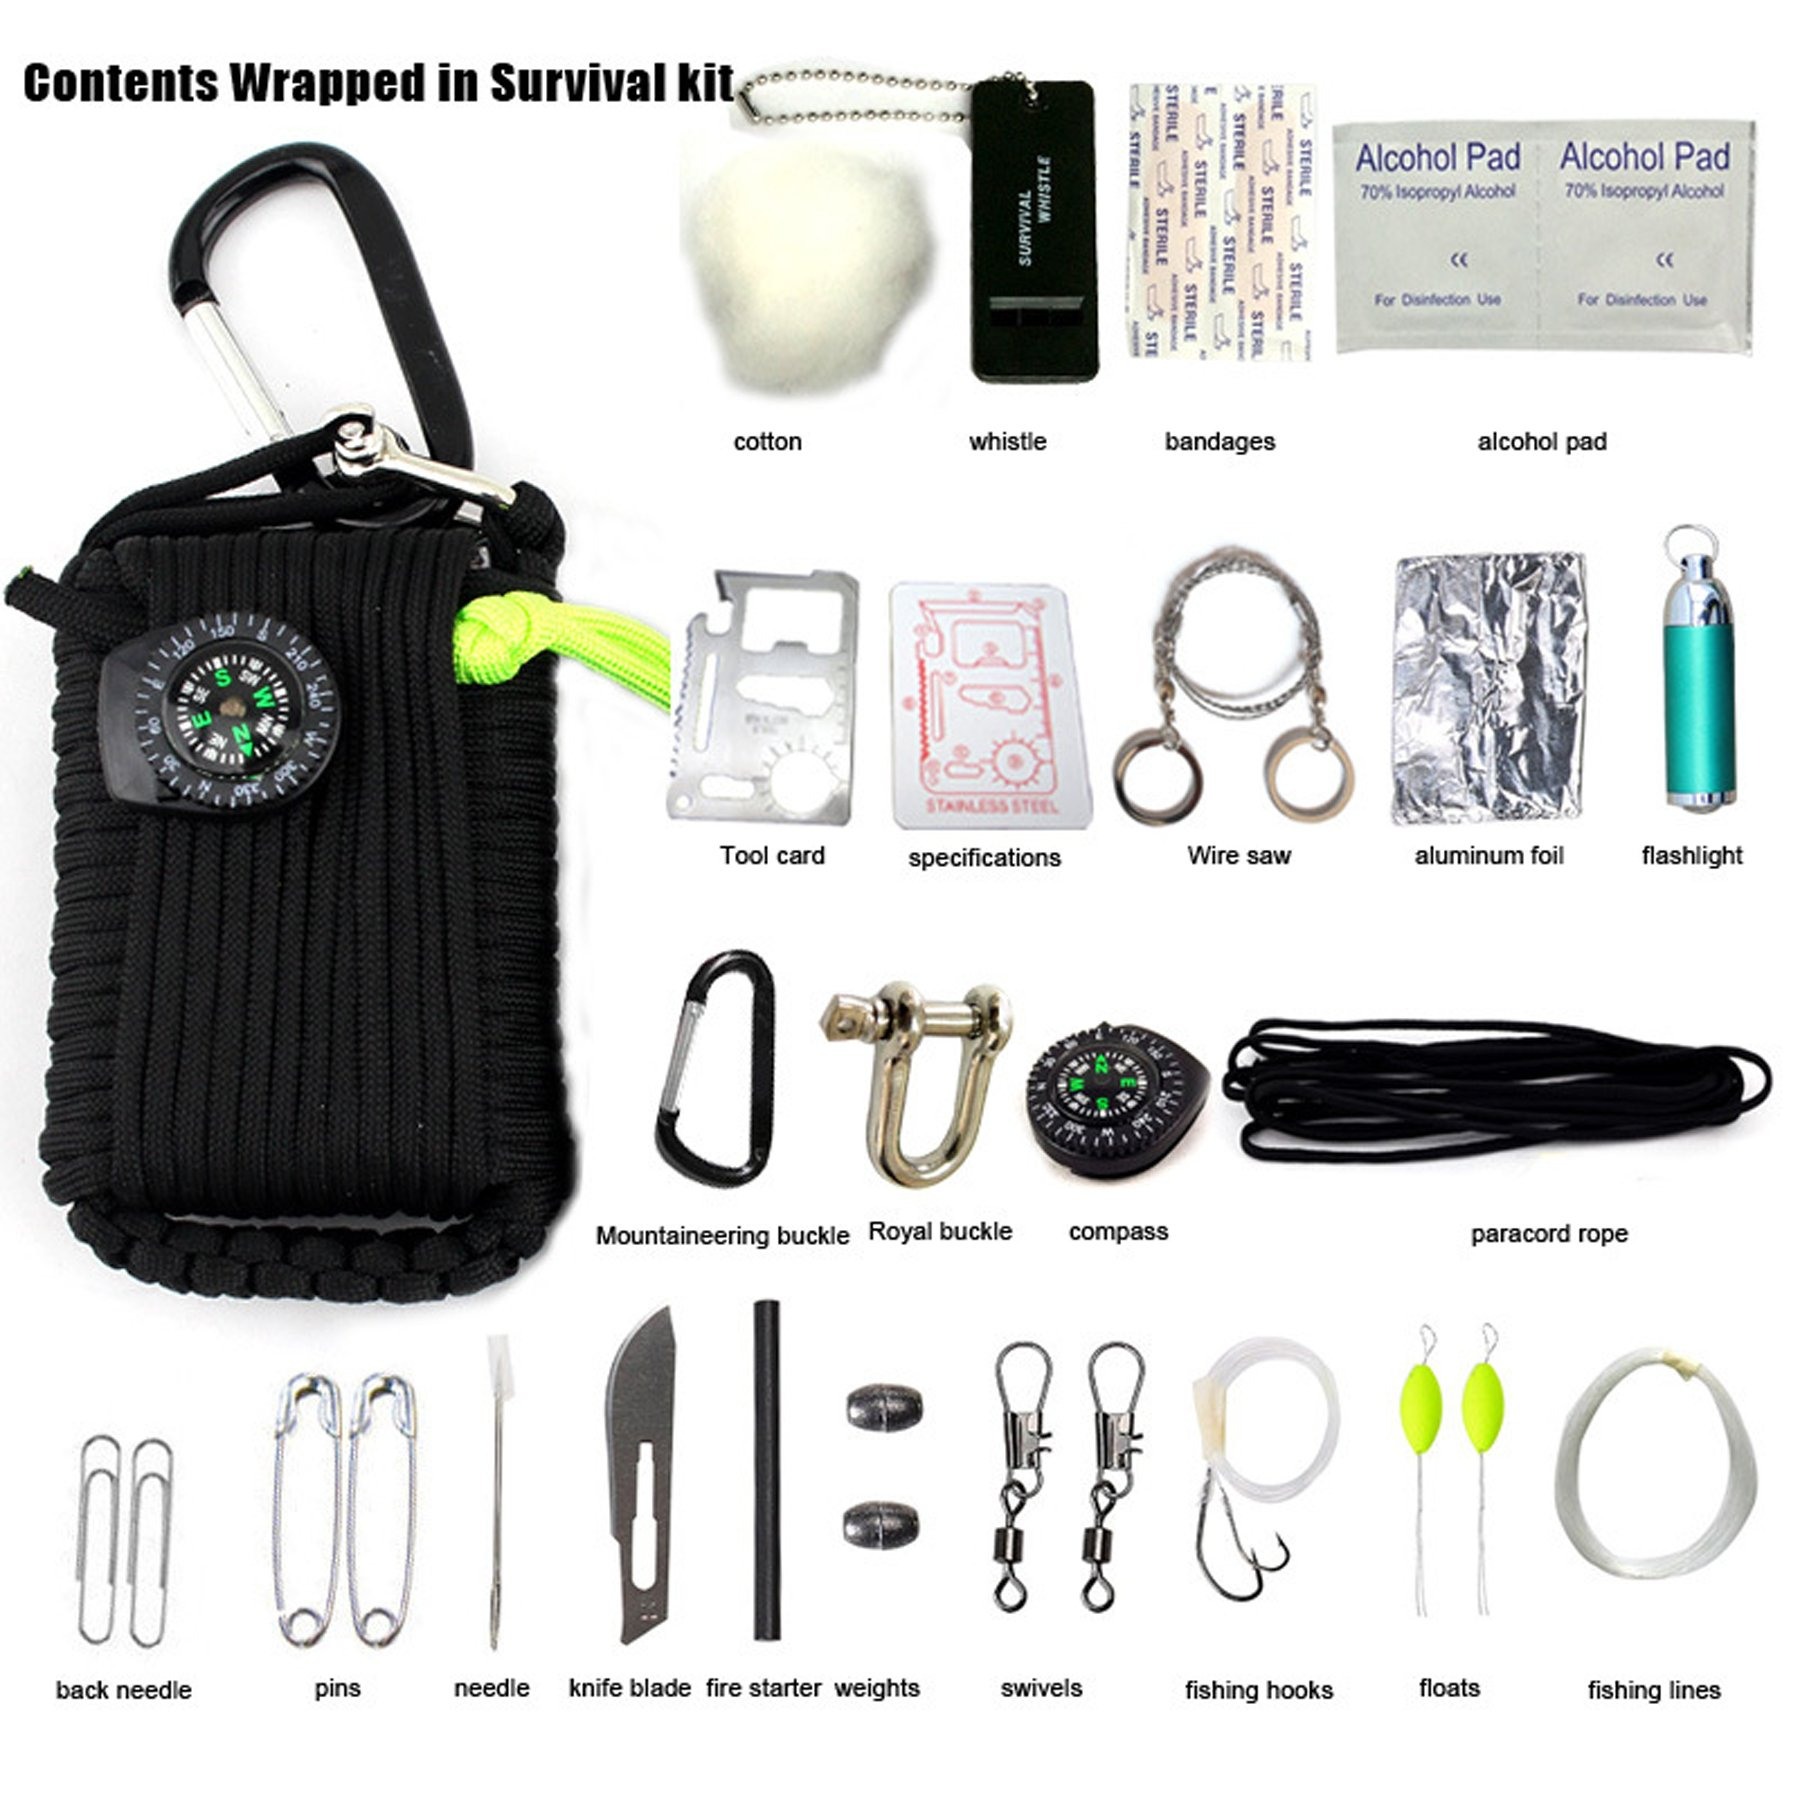 Micogo 29pcs Paracord Emergency Survival Kit,First Aid Kit & Emergency Fishing Gear Whistle Fire Starter Set & more (Black)